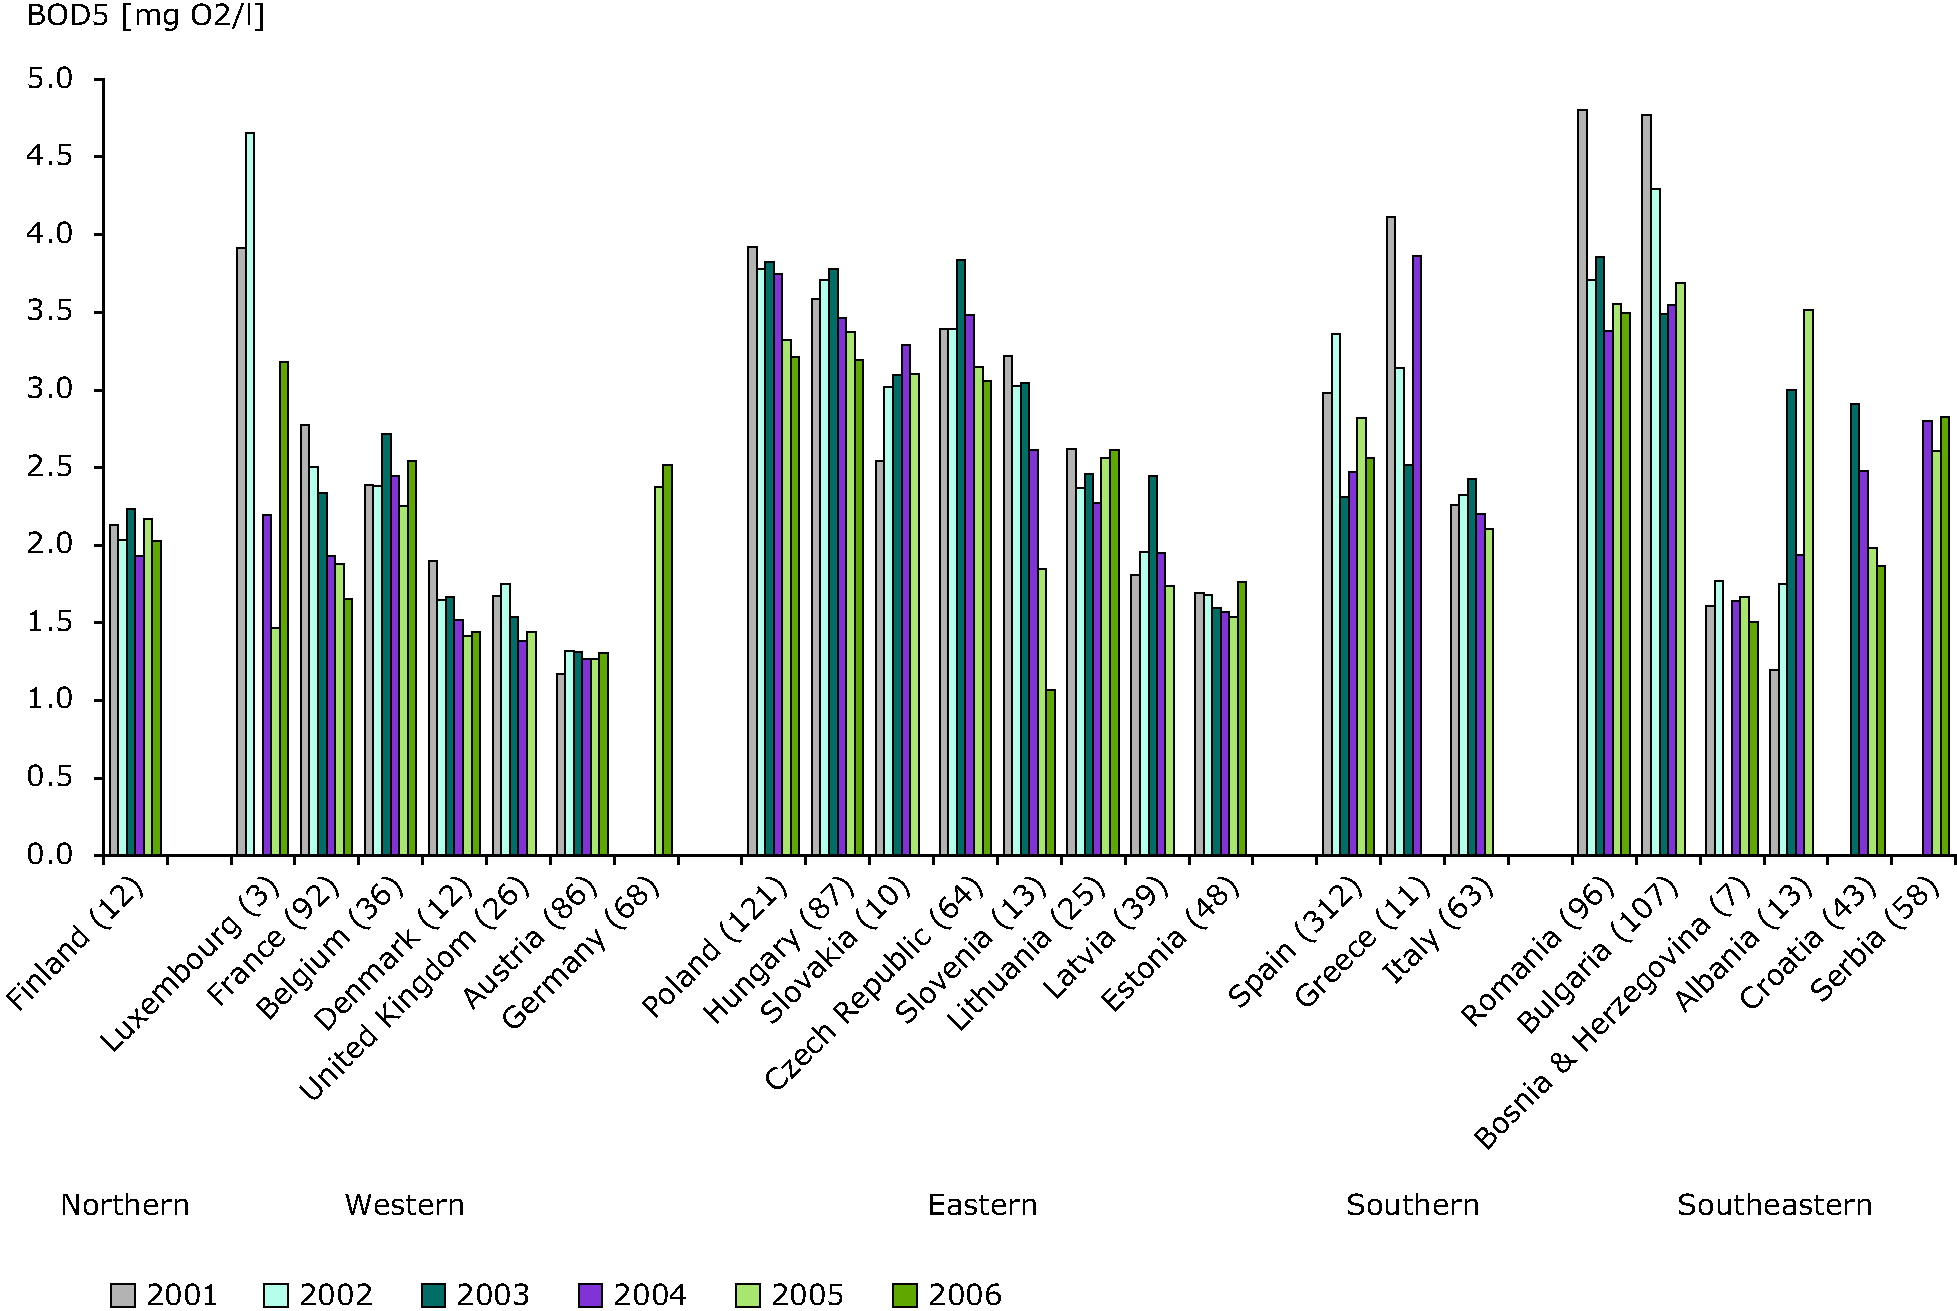 BOD5 concentrations in rivers between 2001 and 2006 in European countries